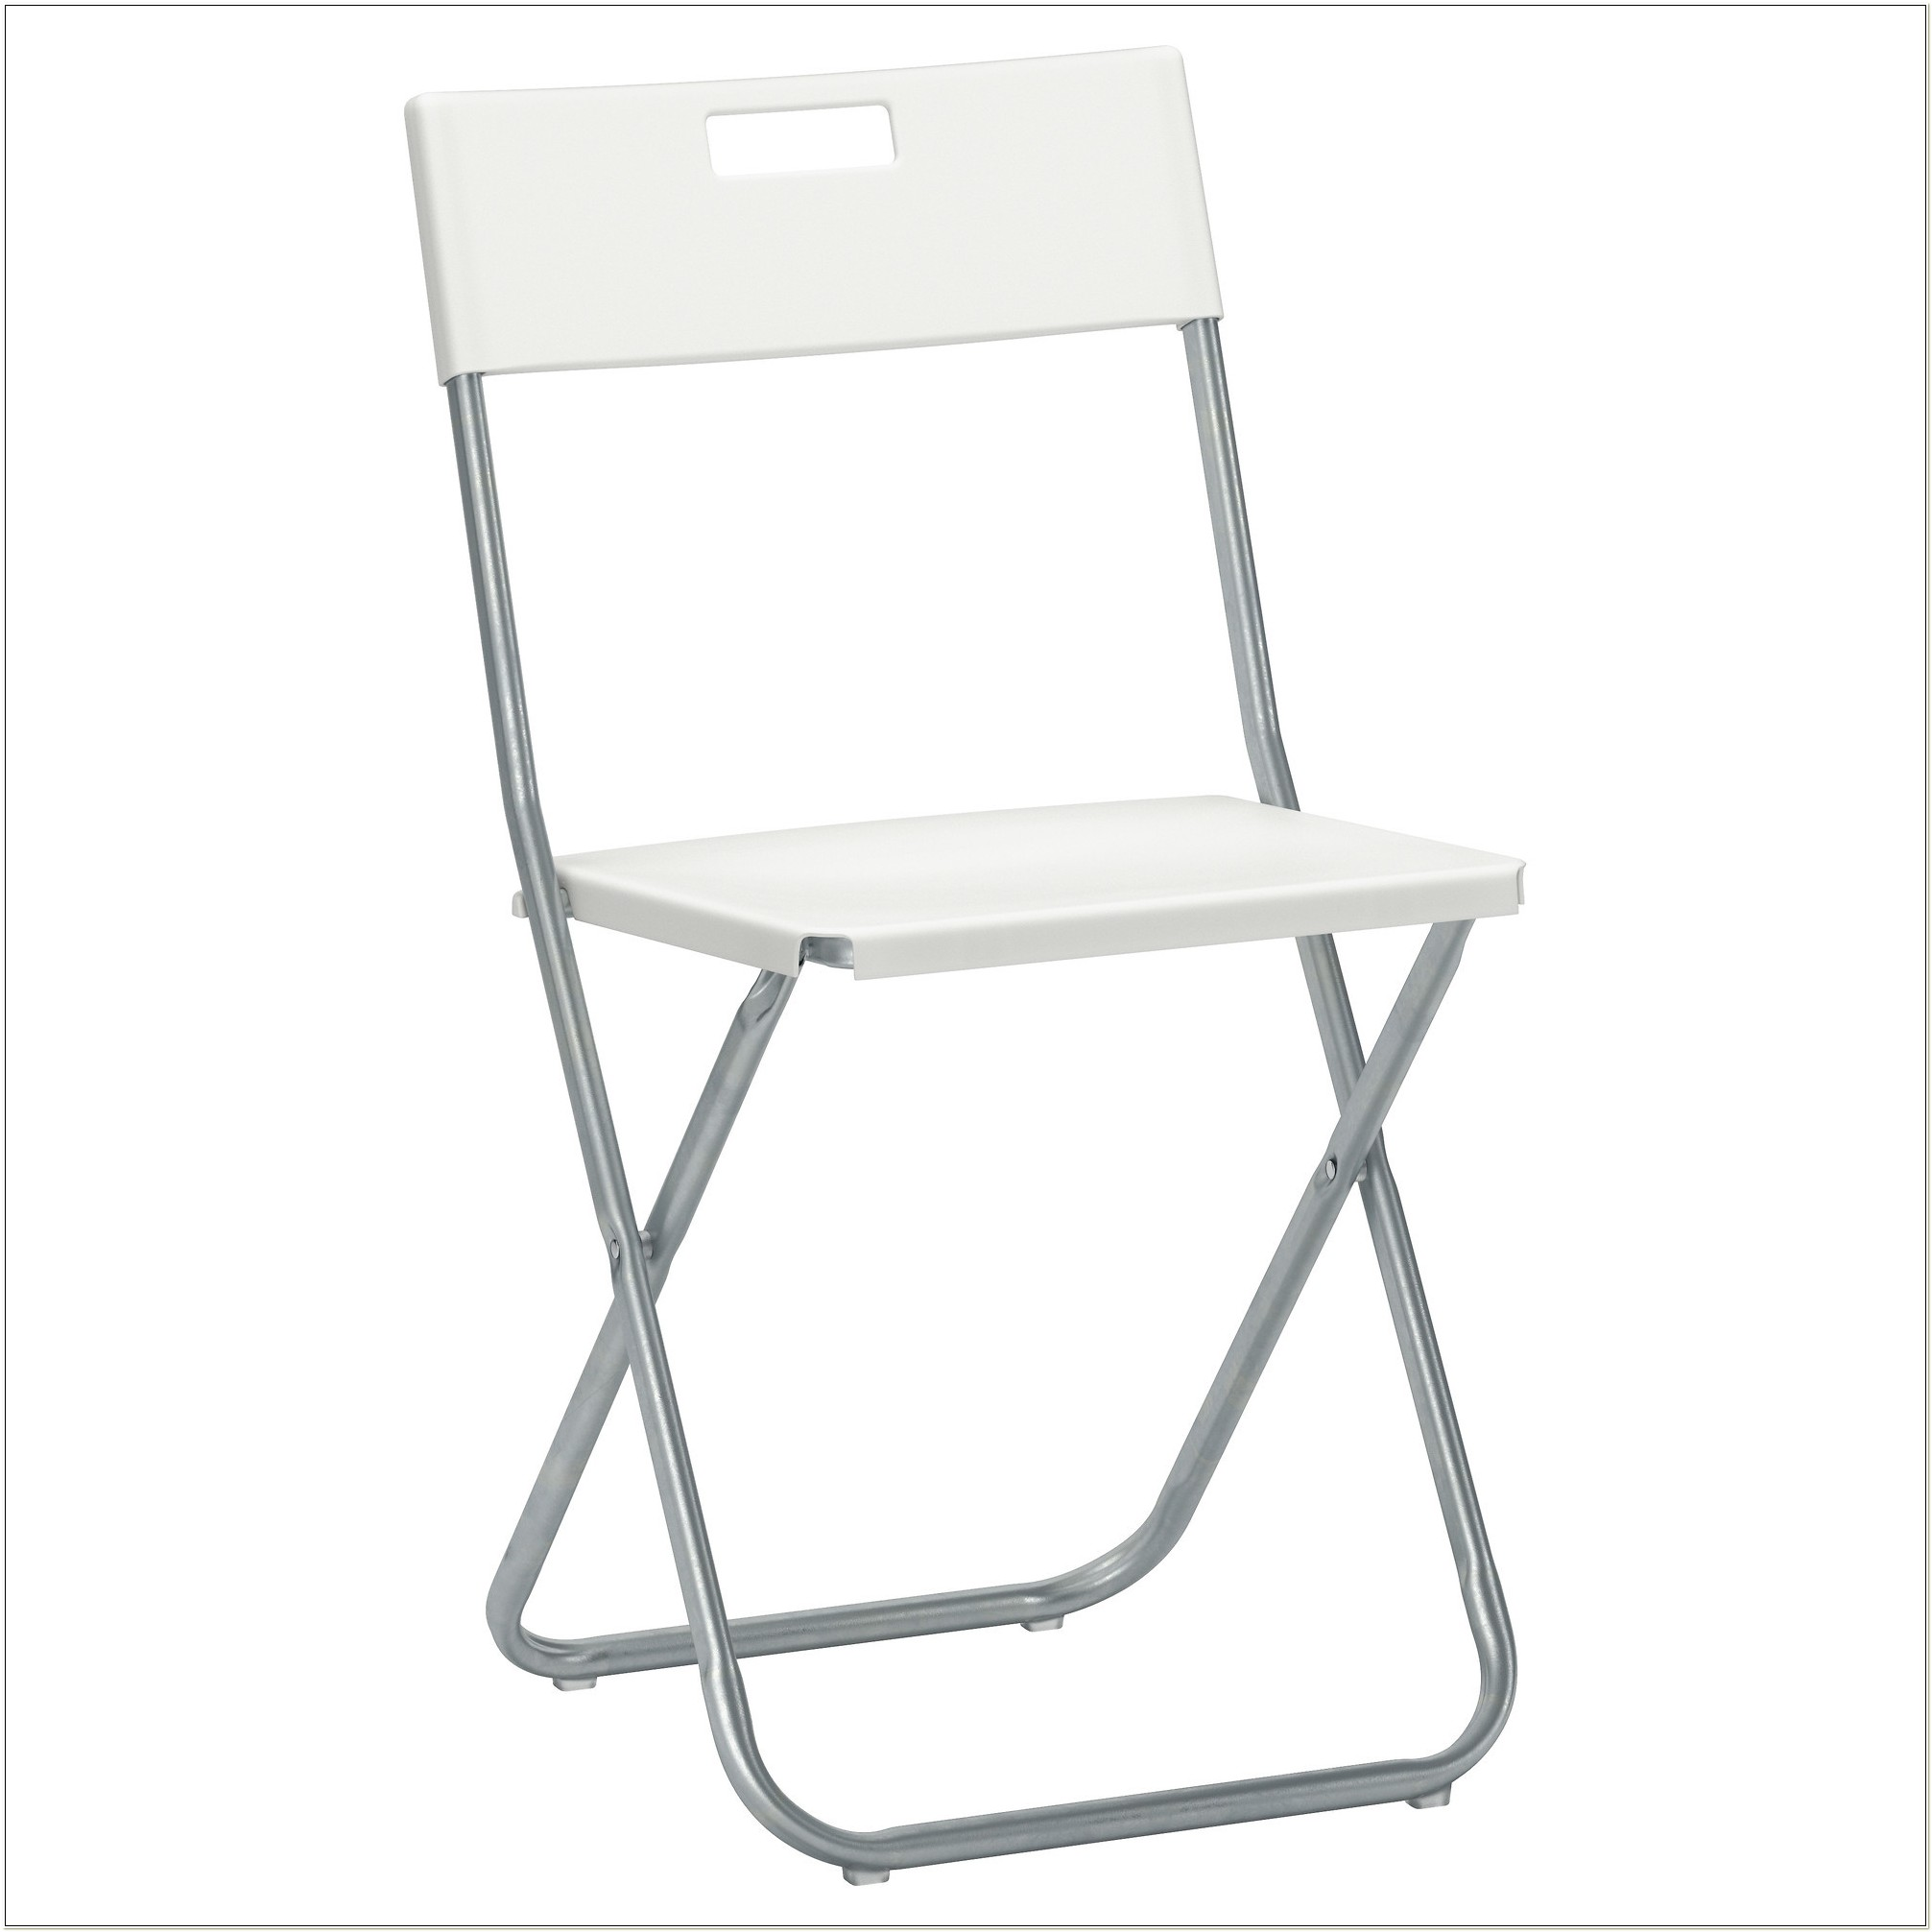 Ikea Plastic Folding Chairs Uk